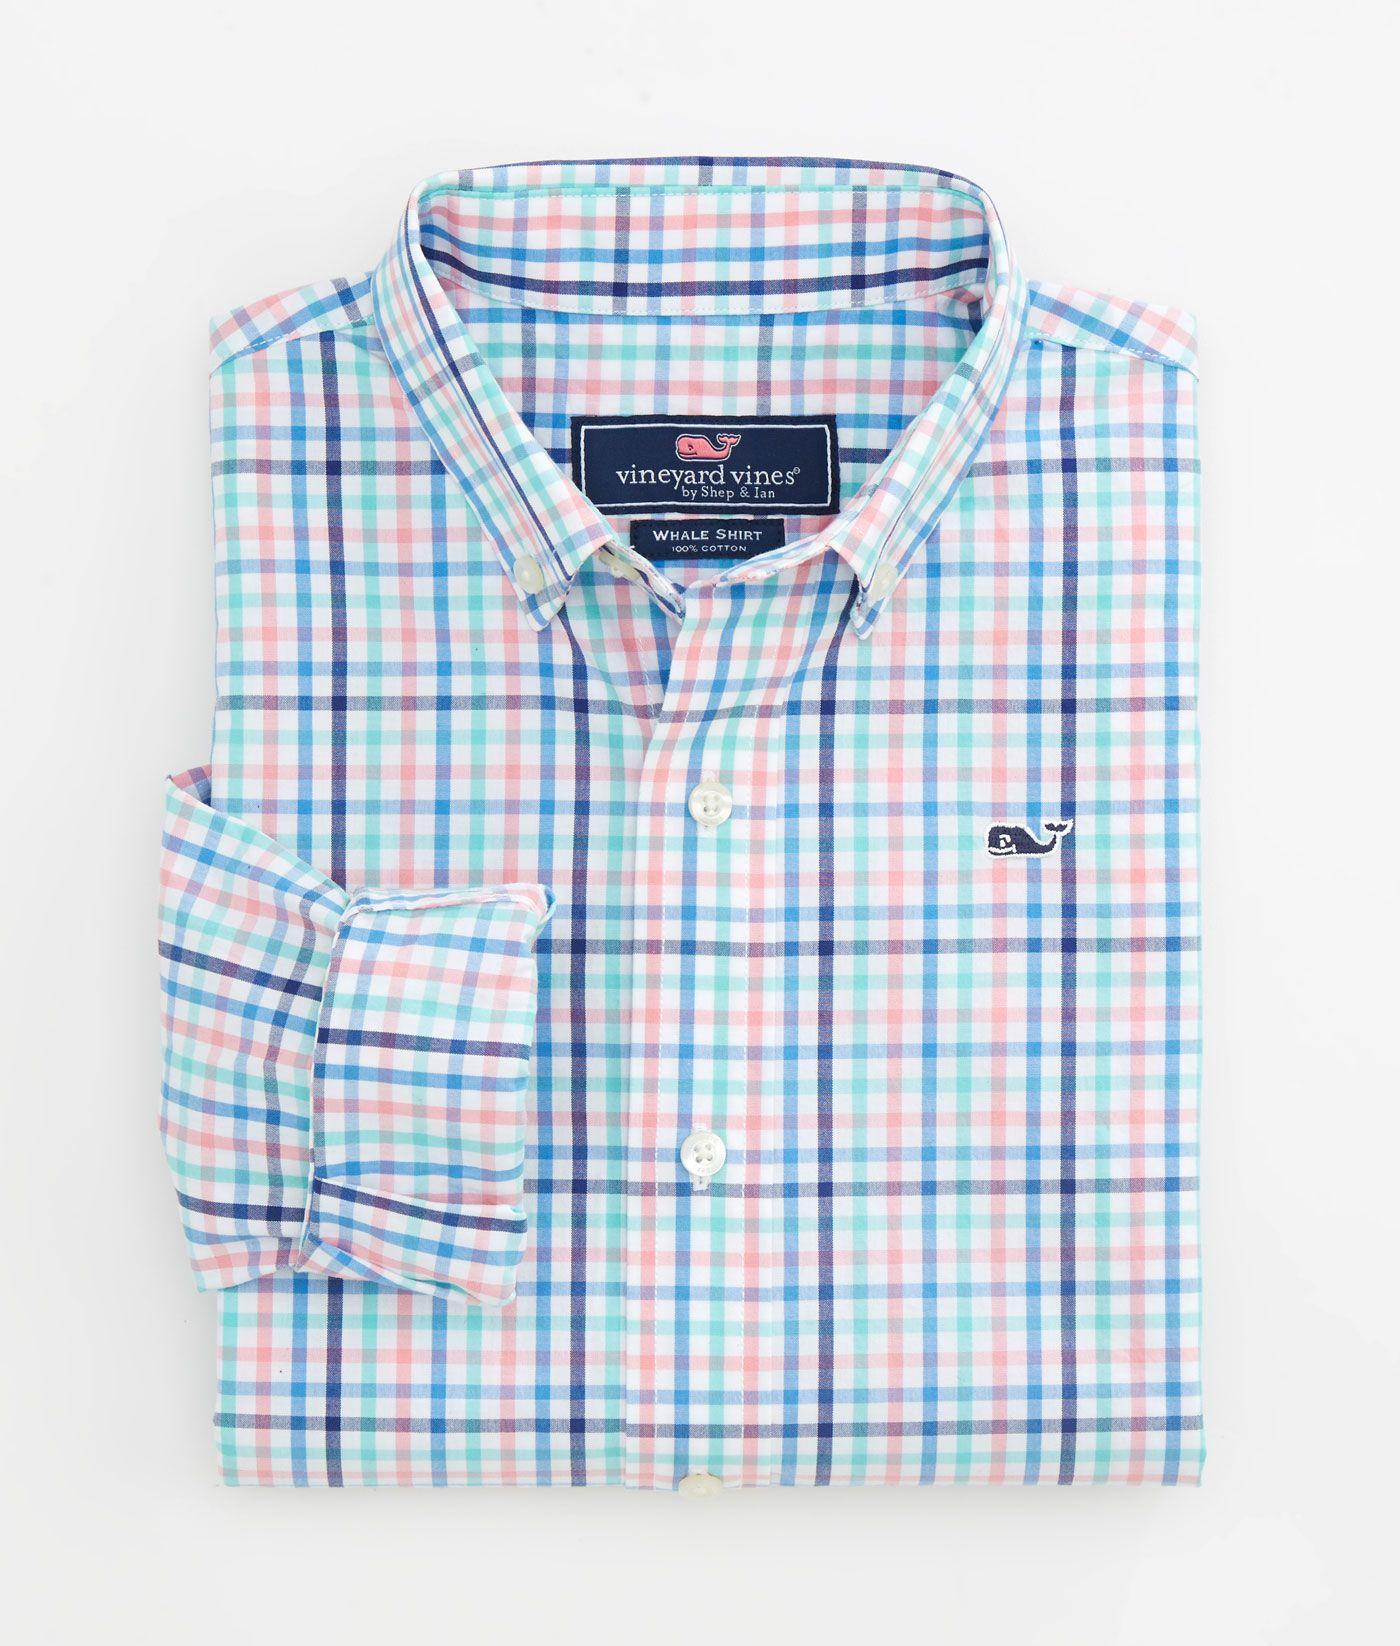 60506749 Shop Boys Channing Check Classic Whale Shirt at vineyard vines | My ...